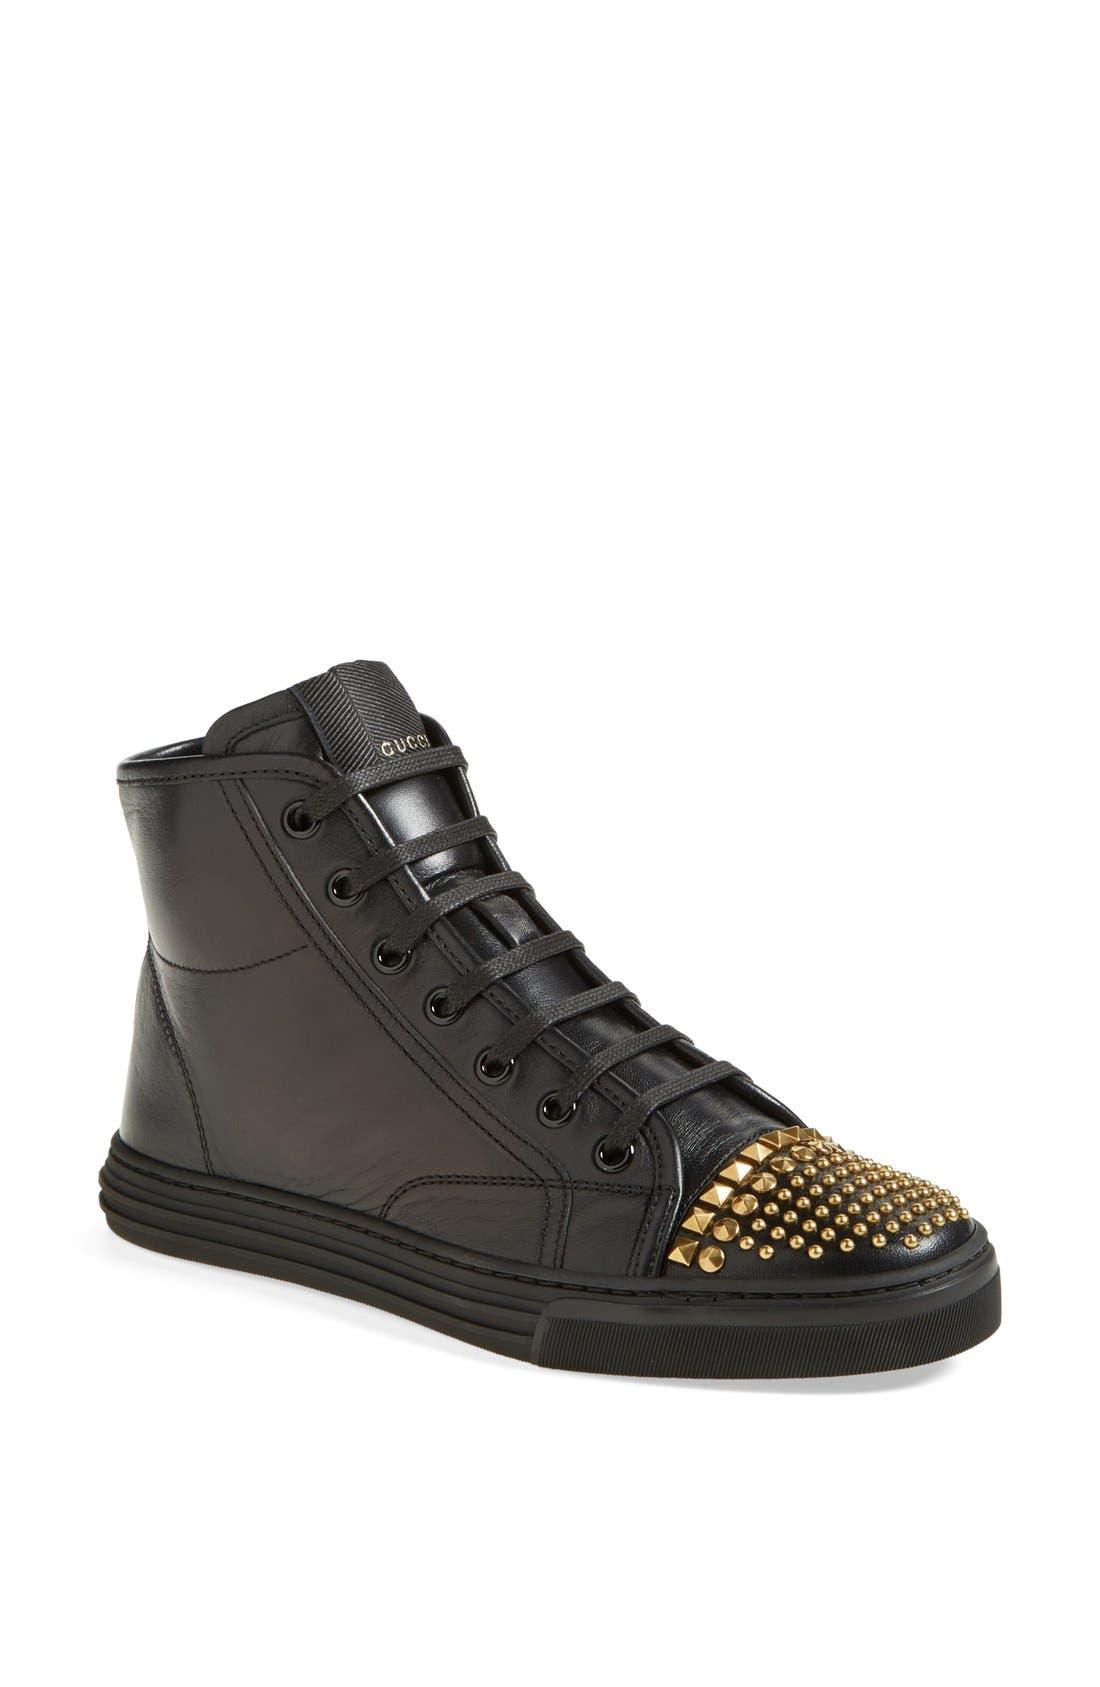 'California' Studded Sneaker,                             Main thumbnail 1, color,                             001